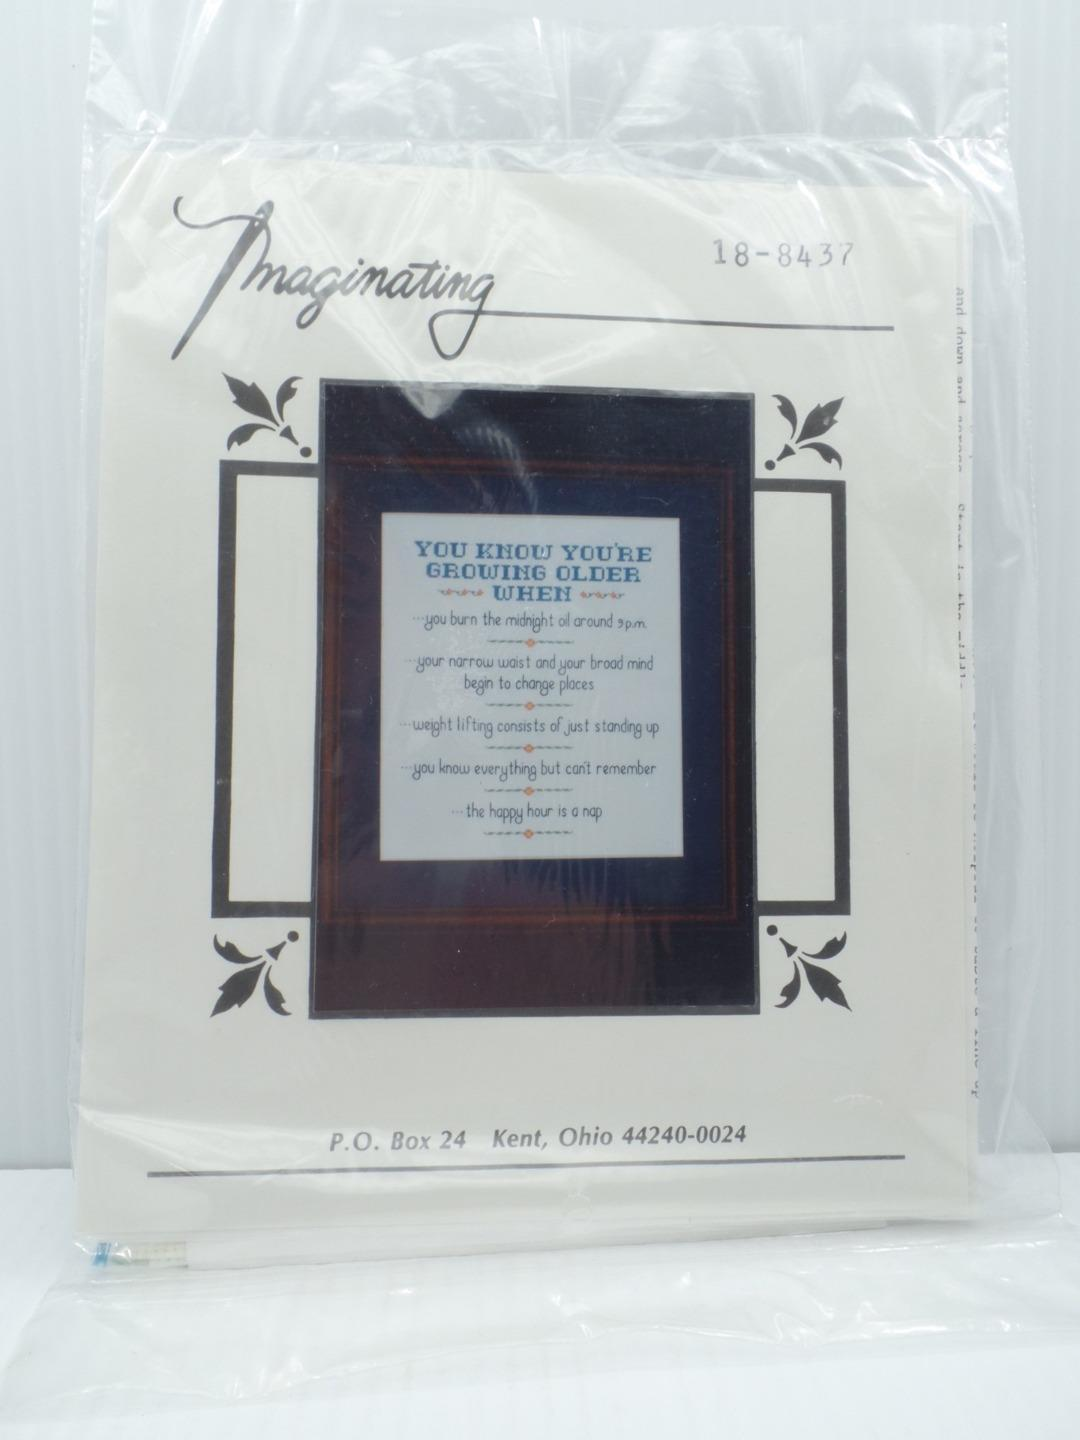 Imaginating Cross Stitch Embroidery Kit You Know You're Growing Older When .... - $19.99